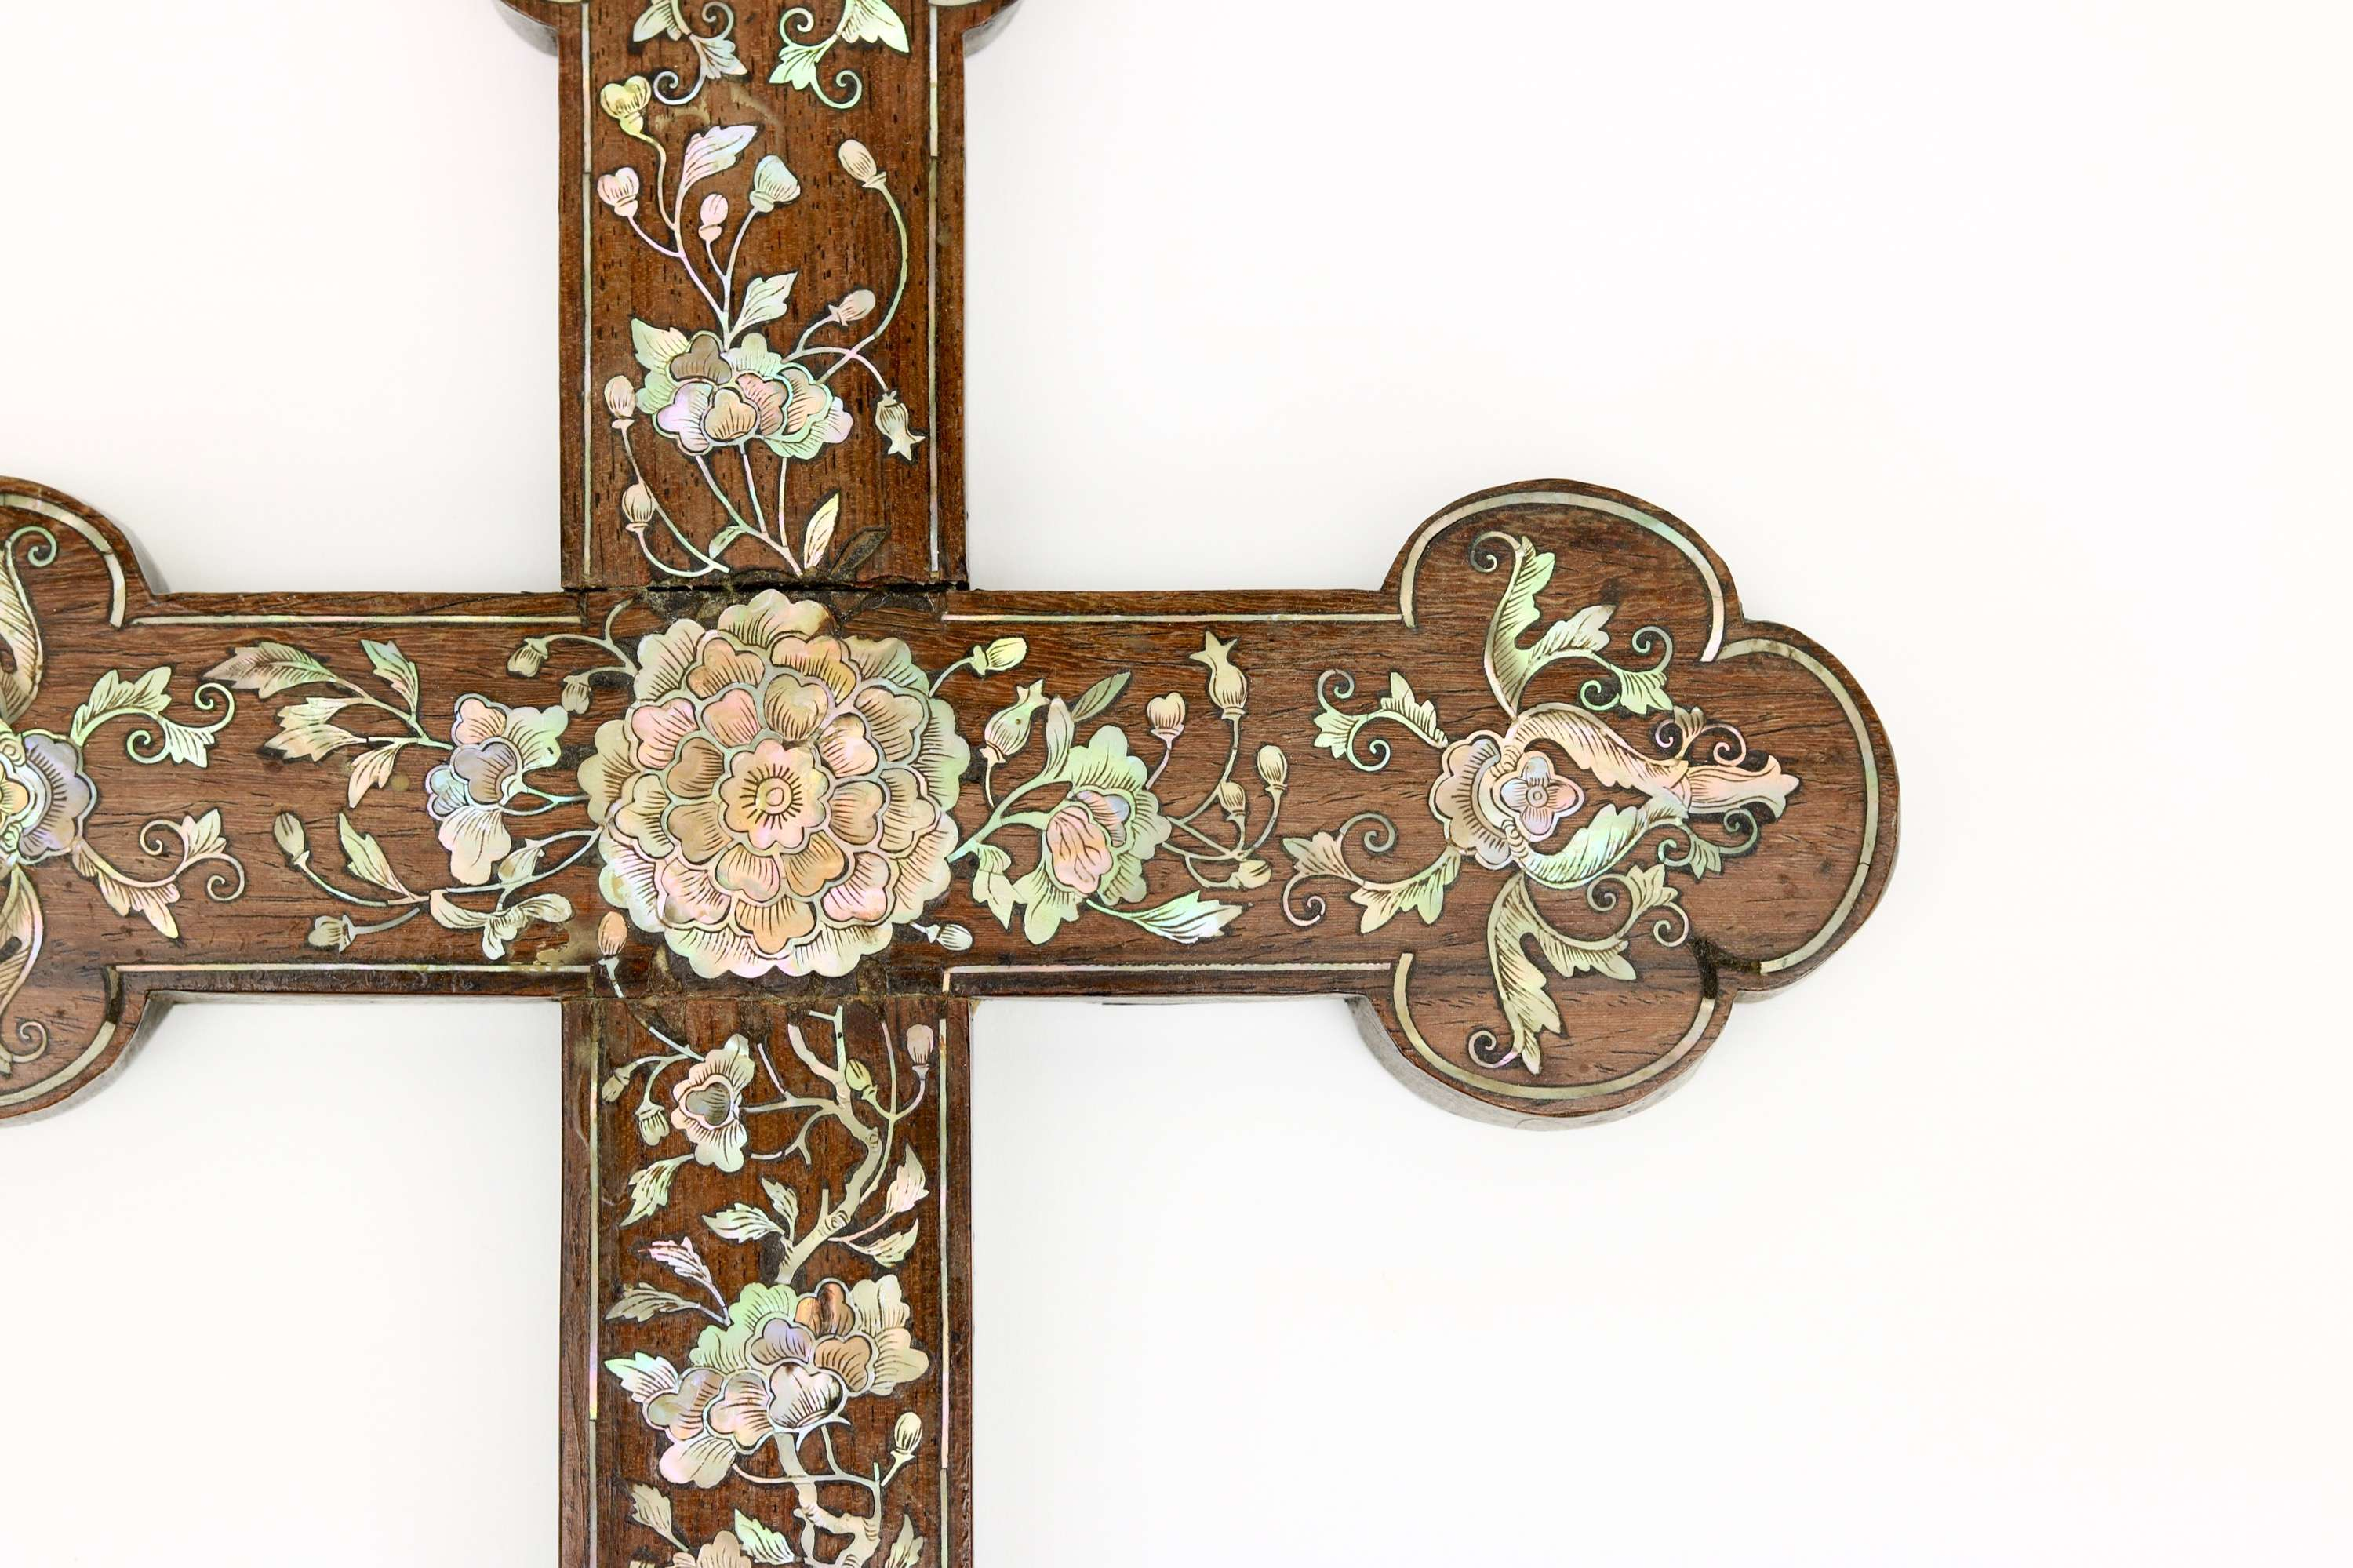 Christian wooden mother-of-pearl inlaid cross Nguyen dynasty Vietnam